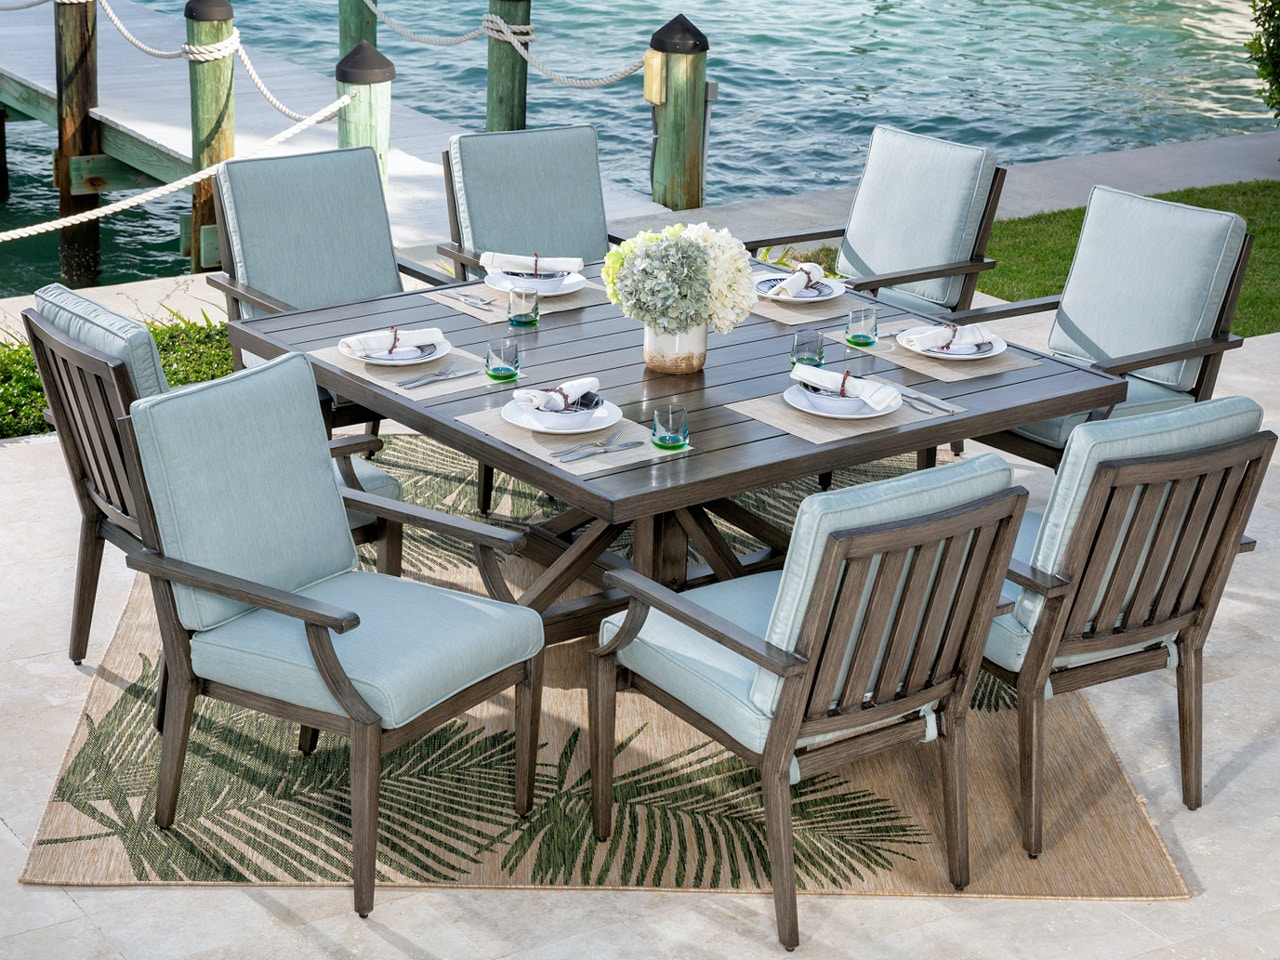 Living Room Monaco Weathered Teak Aluminum And Cast Mist Cushion 9 Pc Dining Set With 64 X 64 In